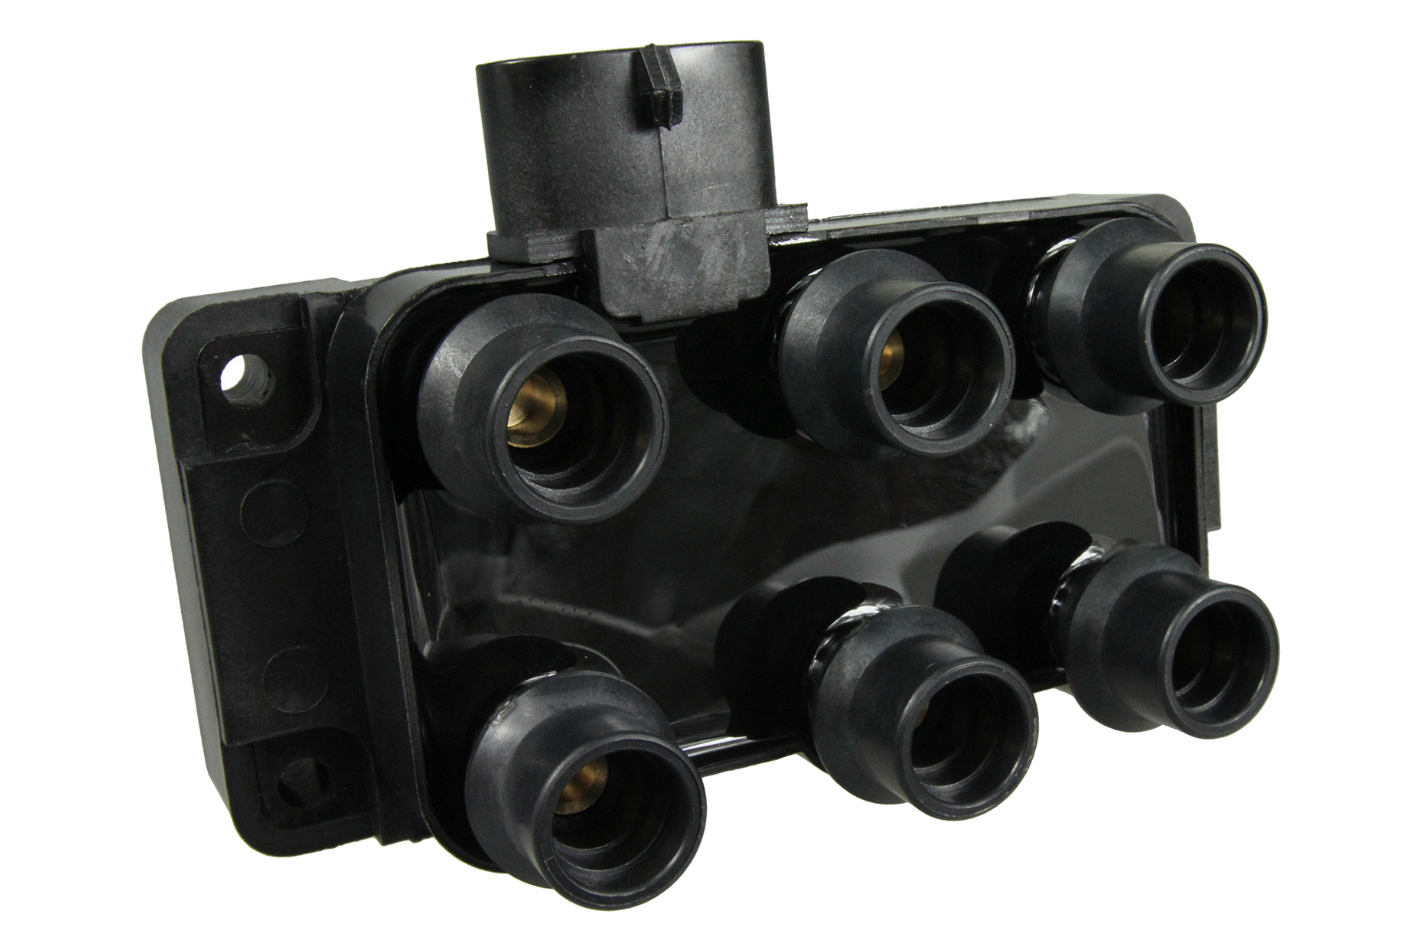 NGK U2029 Ignition Coil, Male HEI Style, Coil Pack, OE Specs, Black, Each